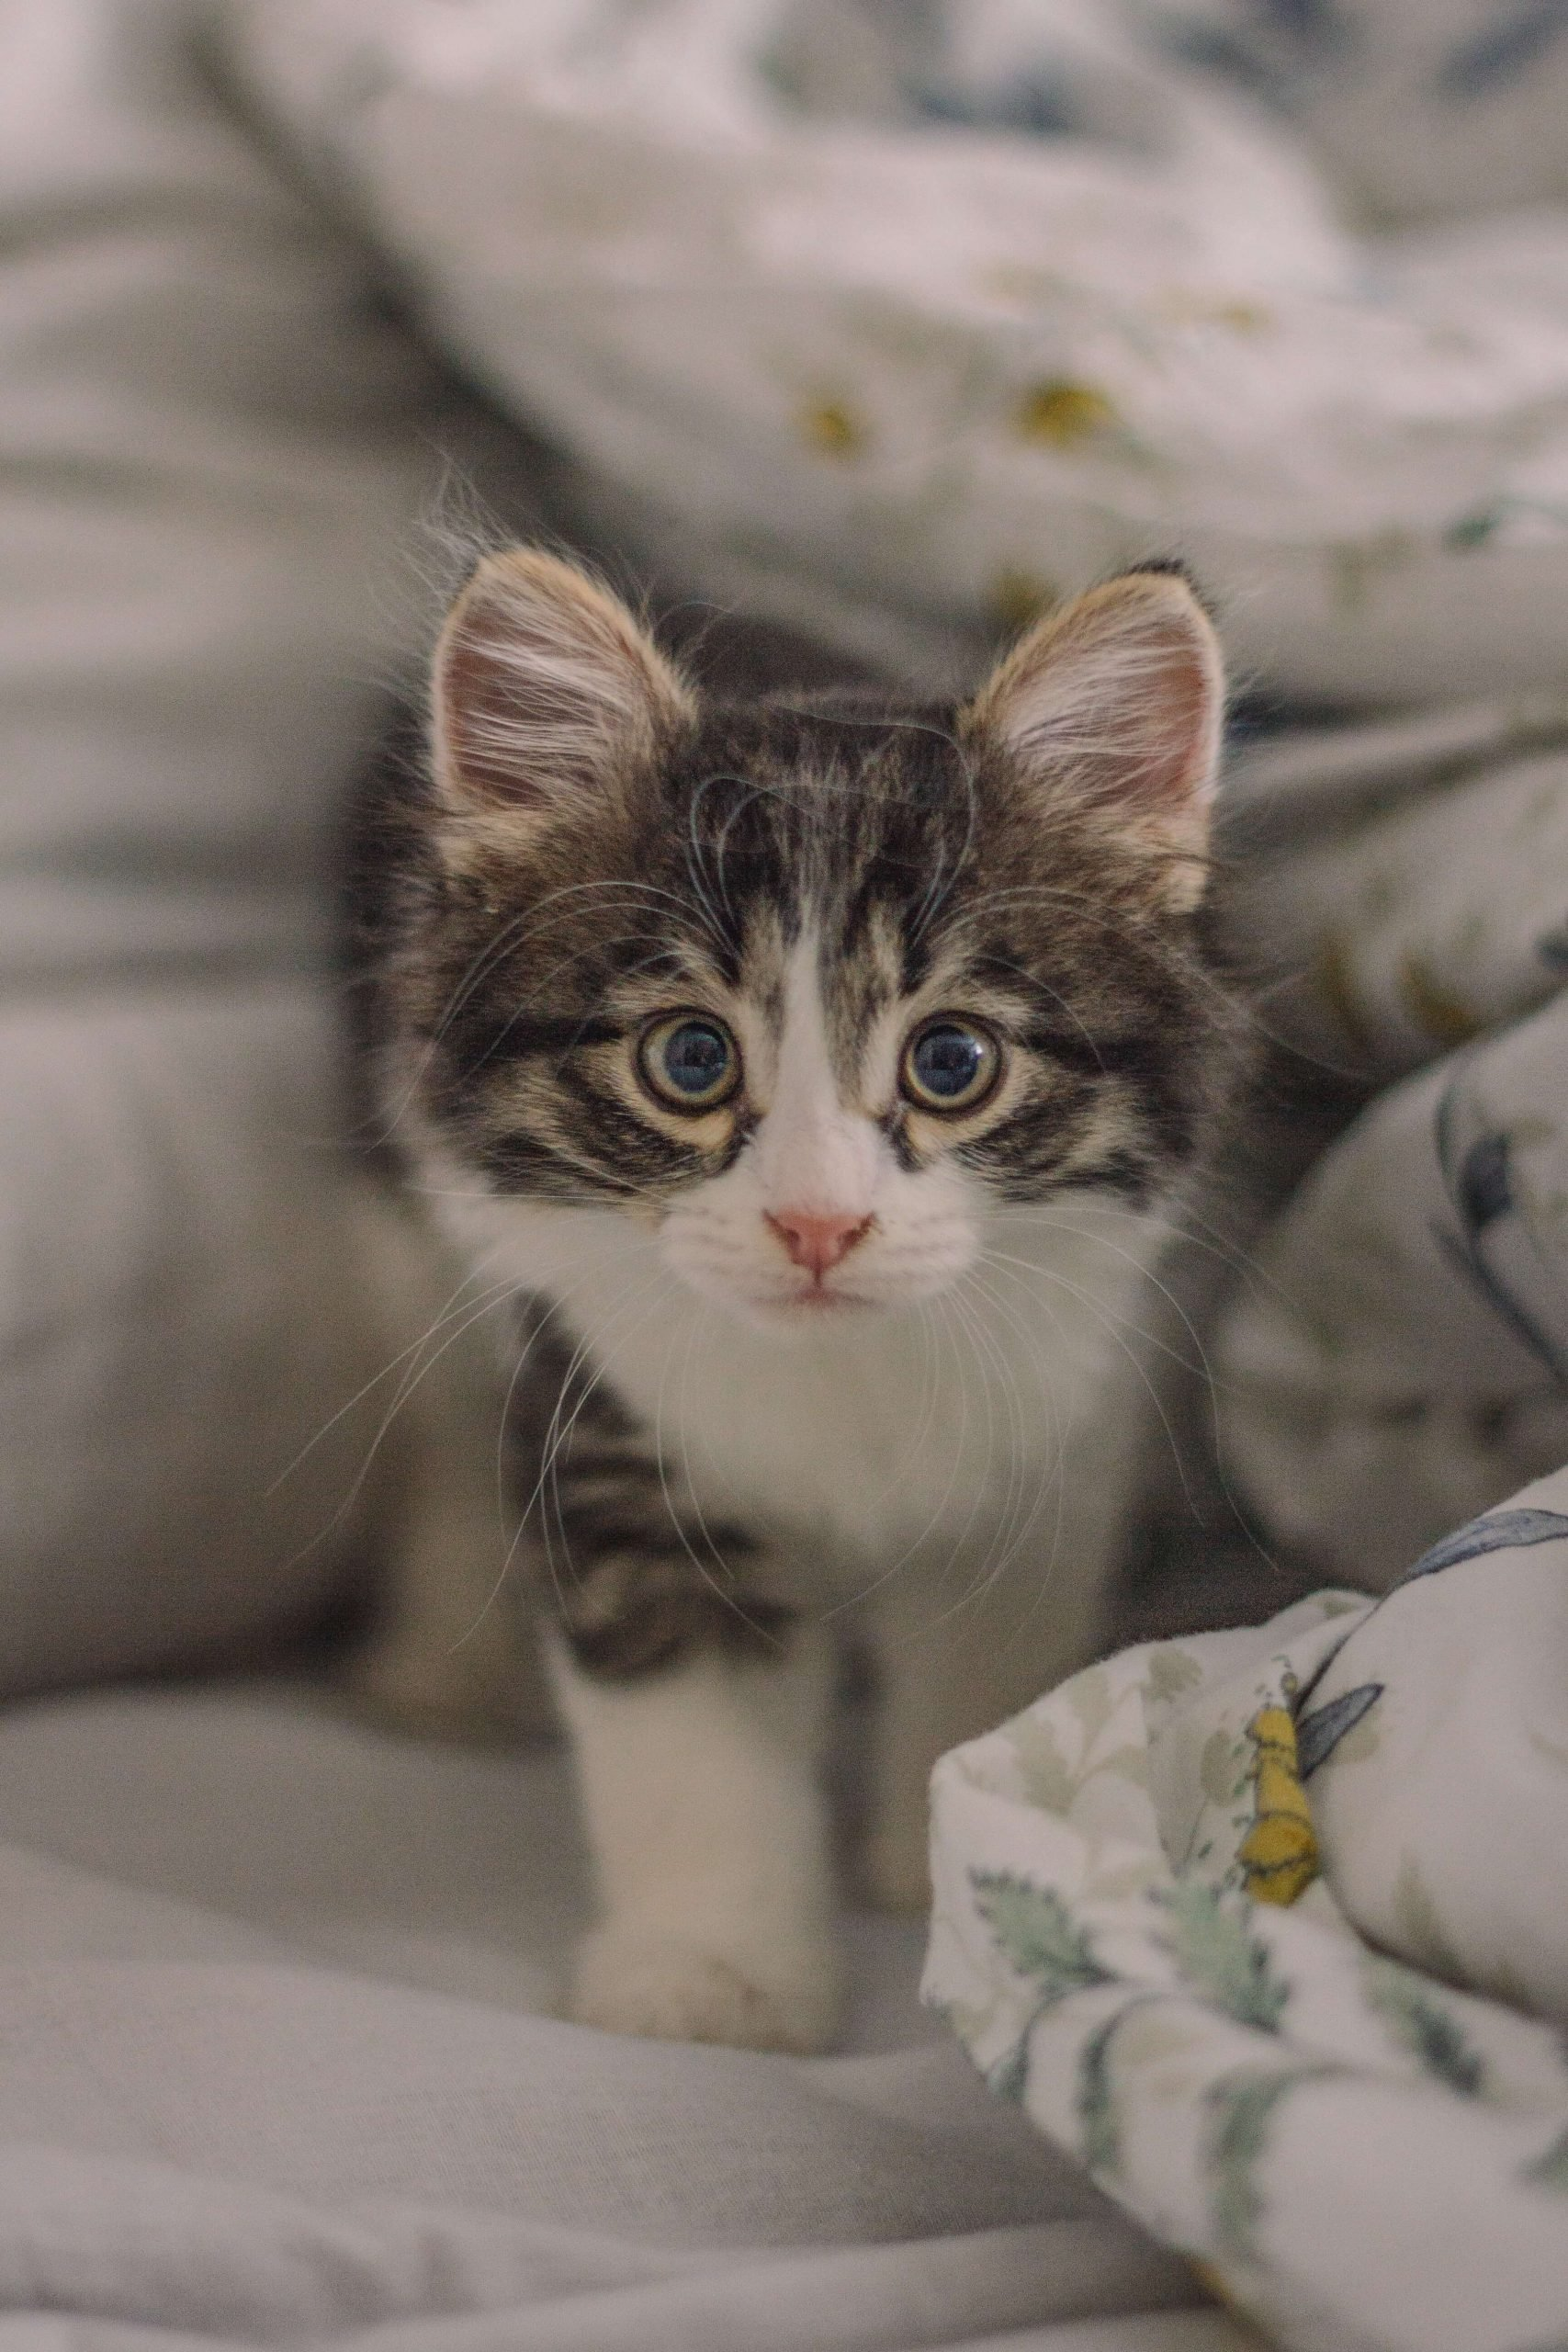 Clean the carpet and upholstery that your cat has been on.